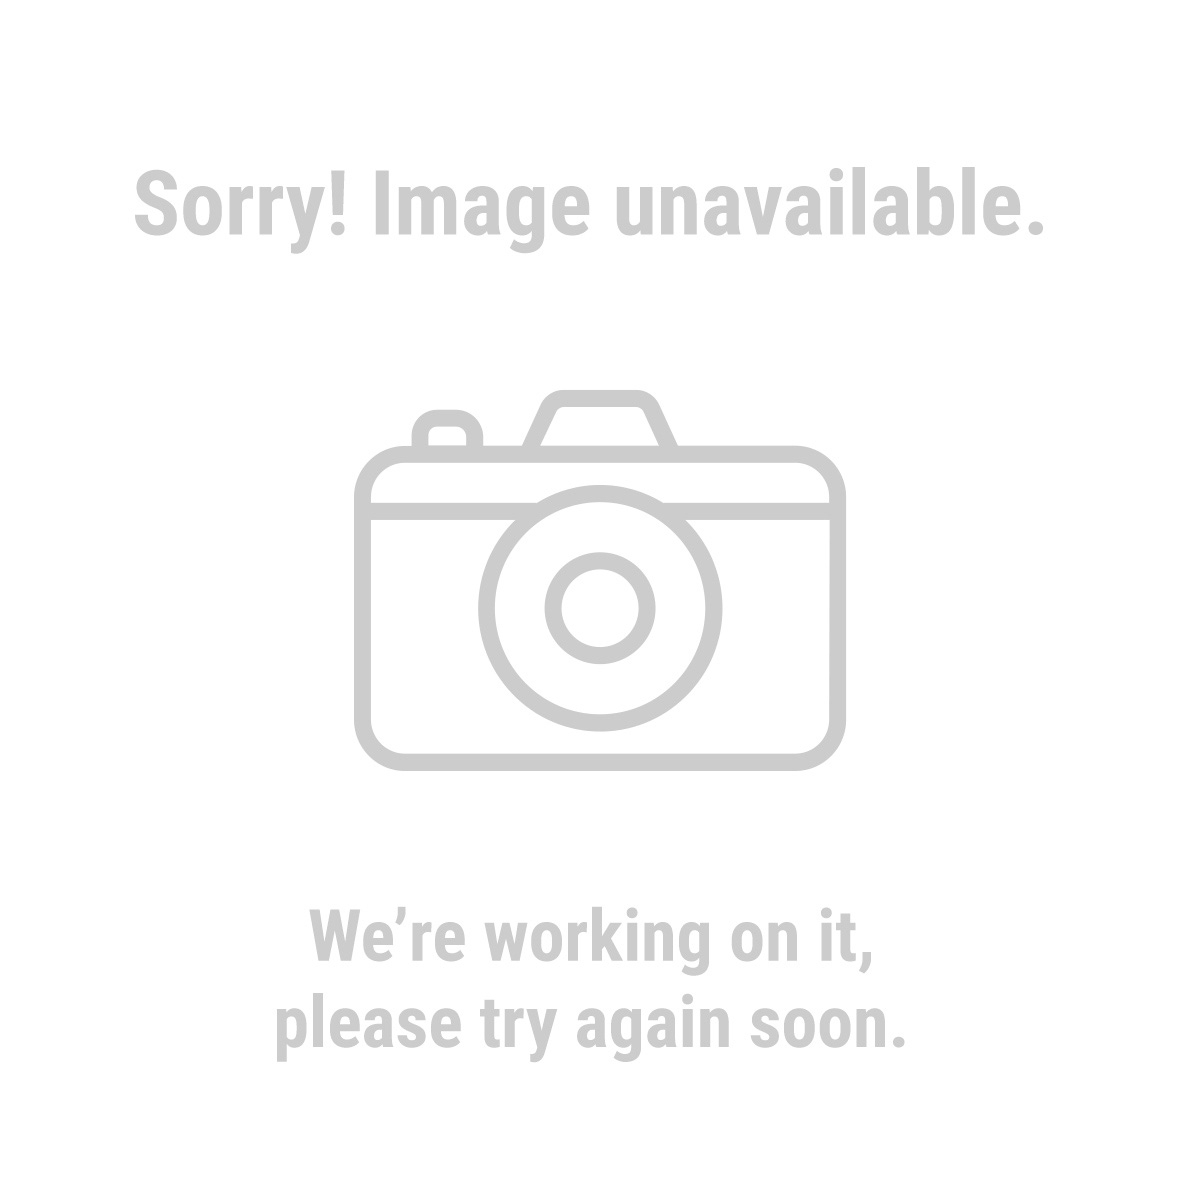 Chicago Electric Welding 63120 Variable Auto Darkening Welding Helmet with Metal Head® Design